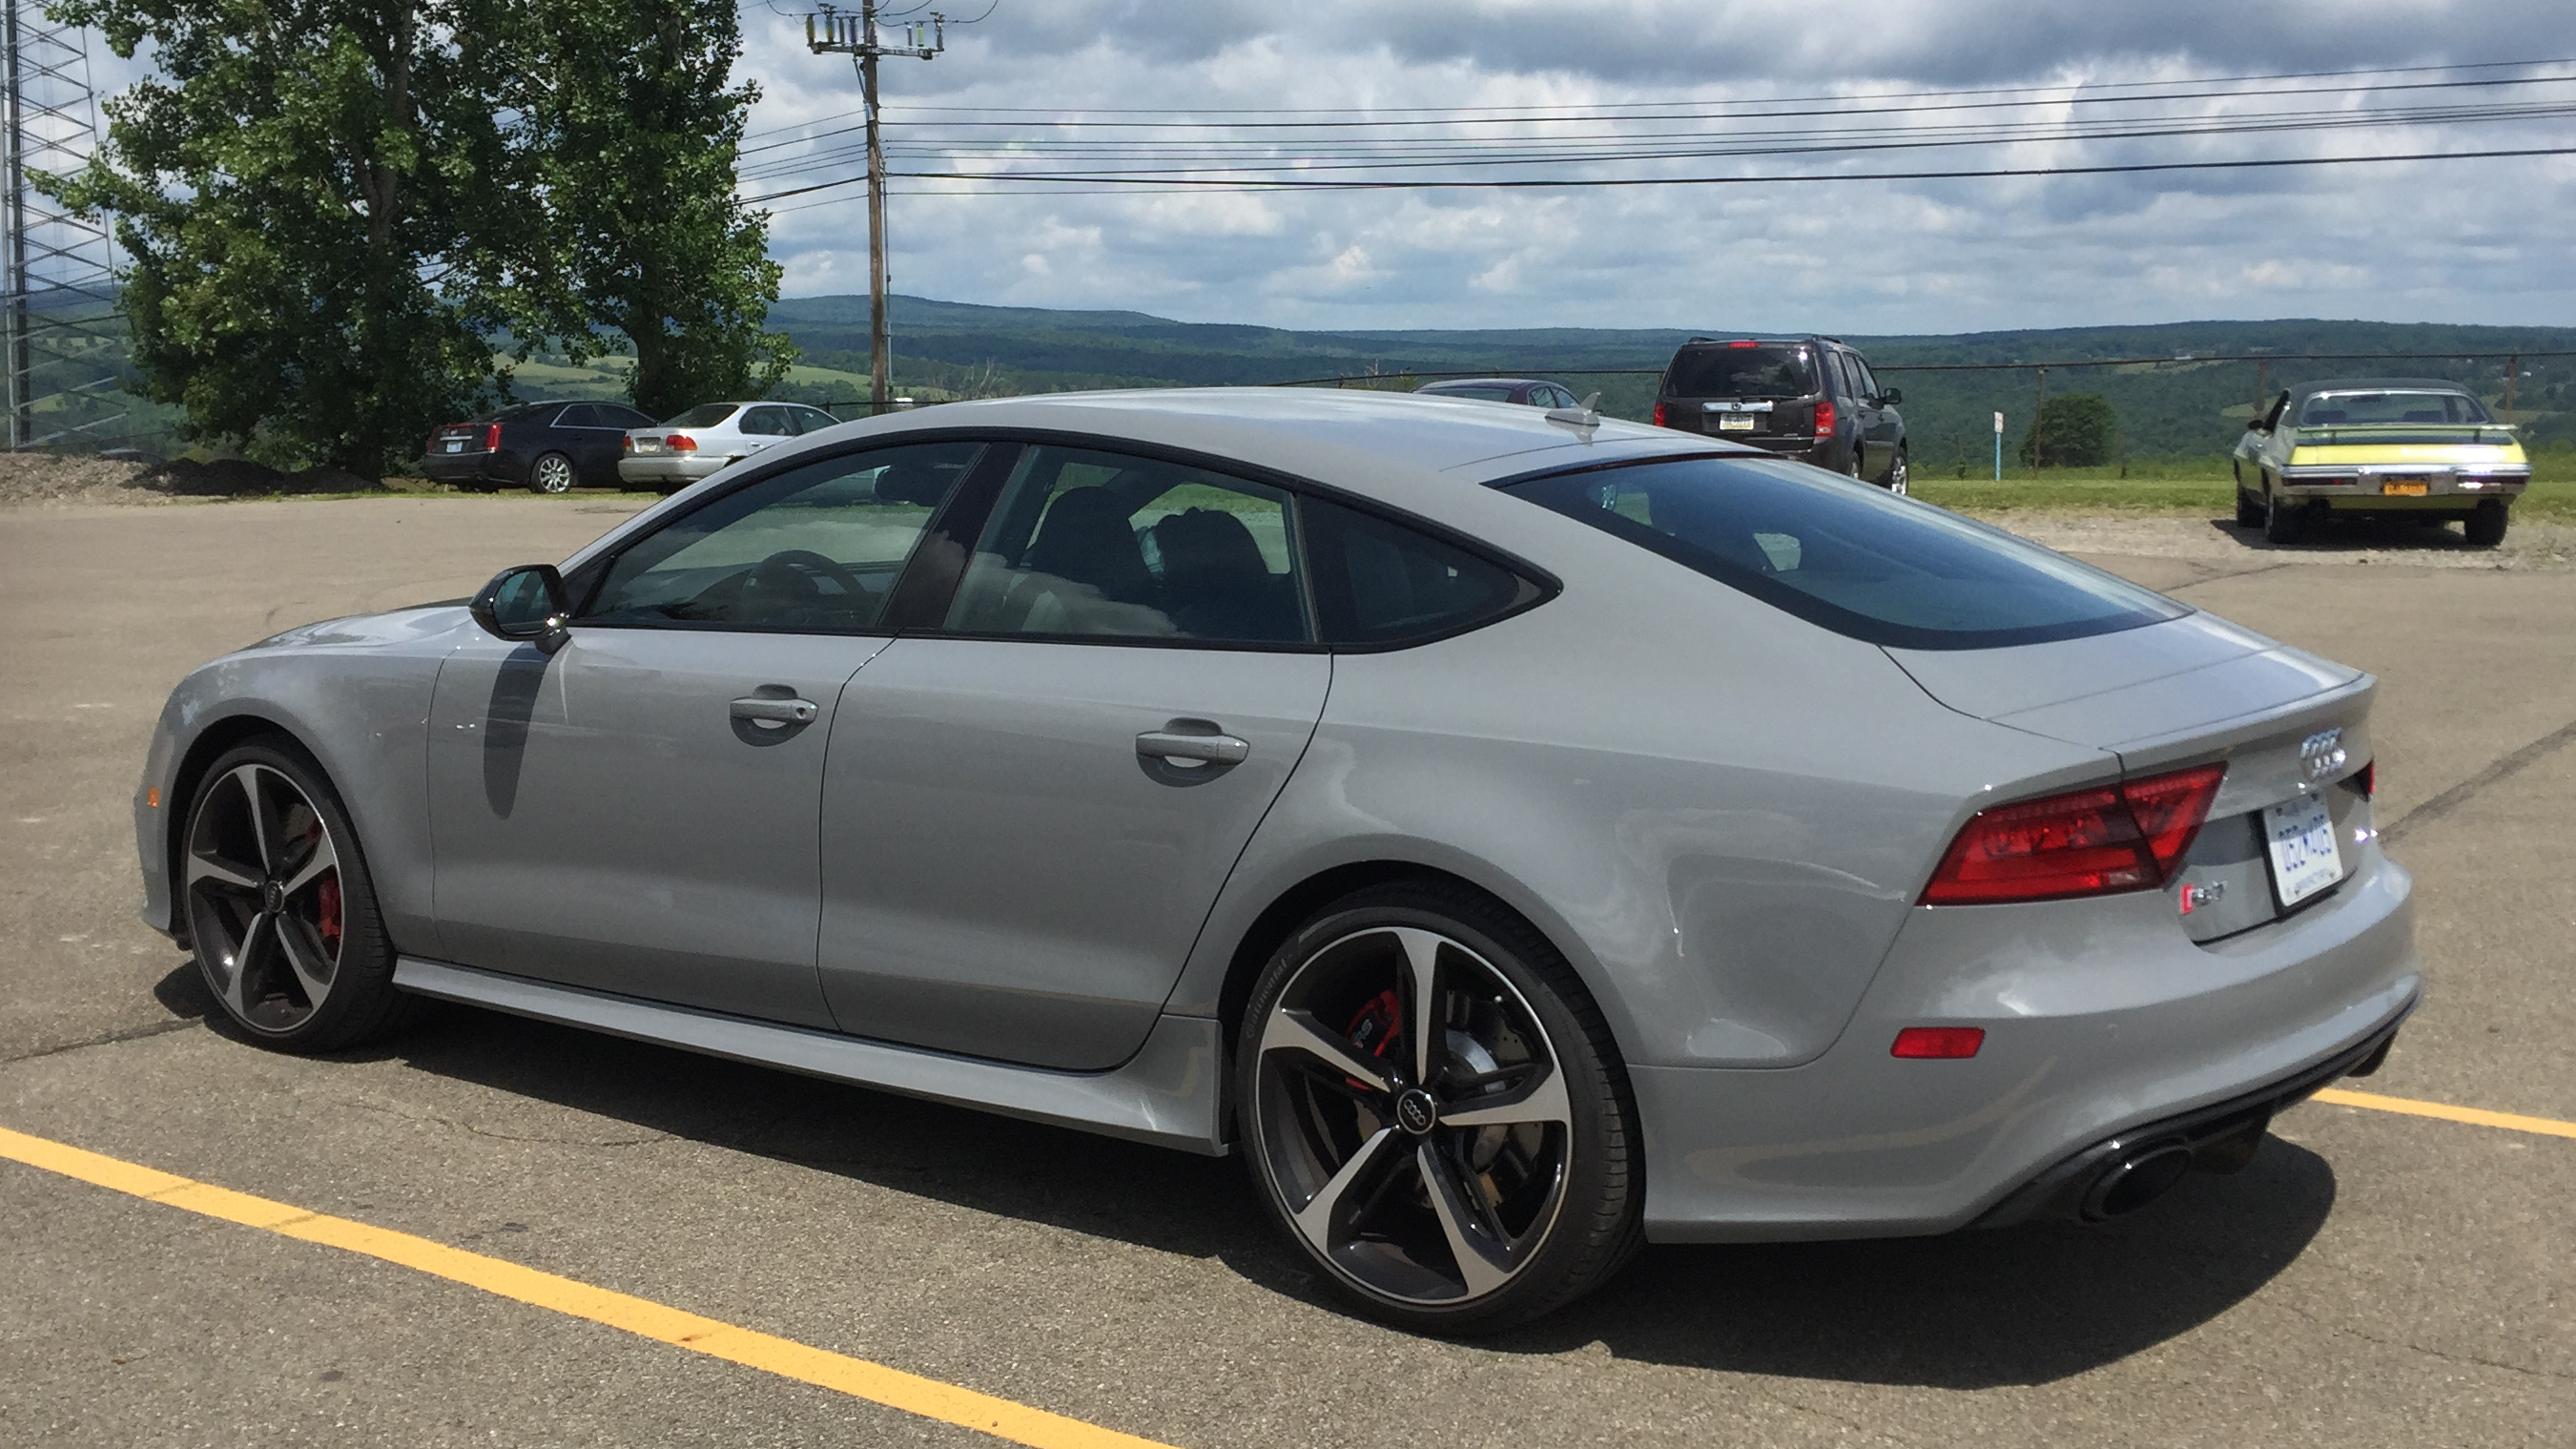 This Audi RS7 has ative suspension, called Dynamic Ride Control in Audi-speak. It made the five-hour drive rather effortless thanks to a good ride (OK, the mind-bending acceleration on tap from the 4L twin-turbo V8 helped a lot too).